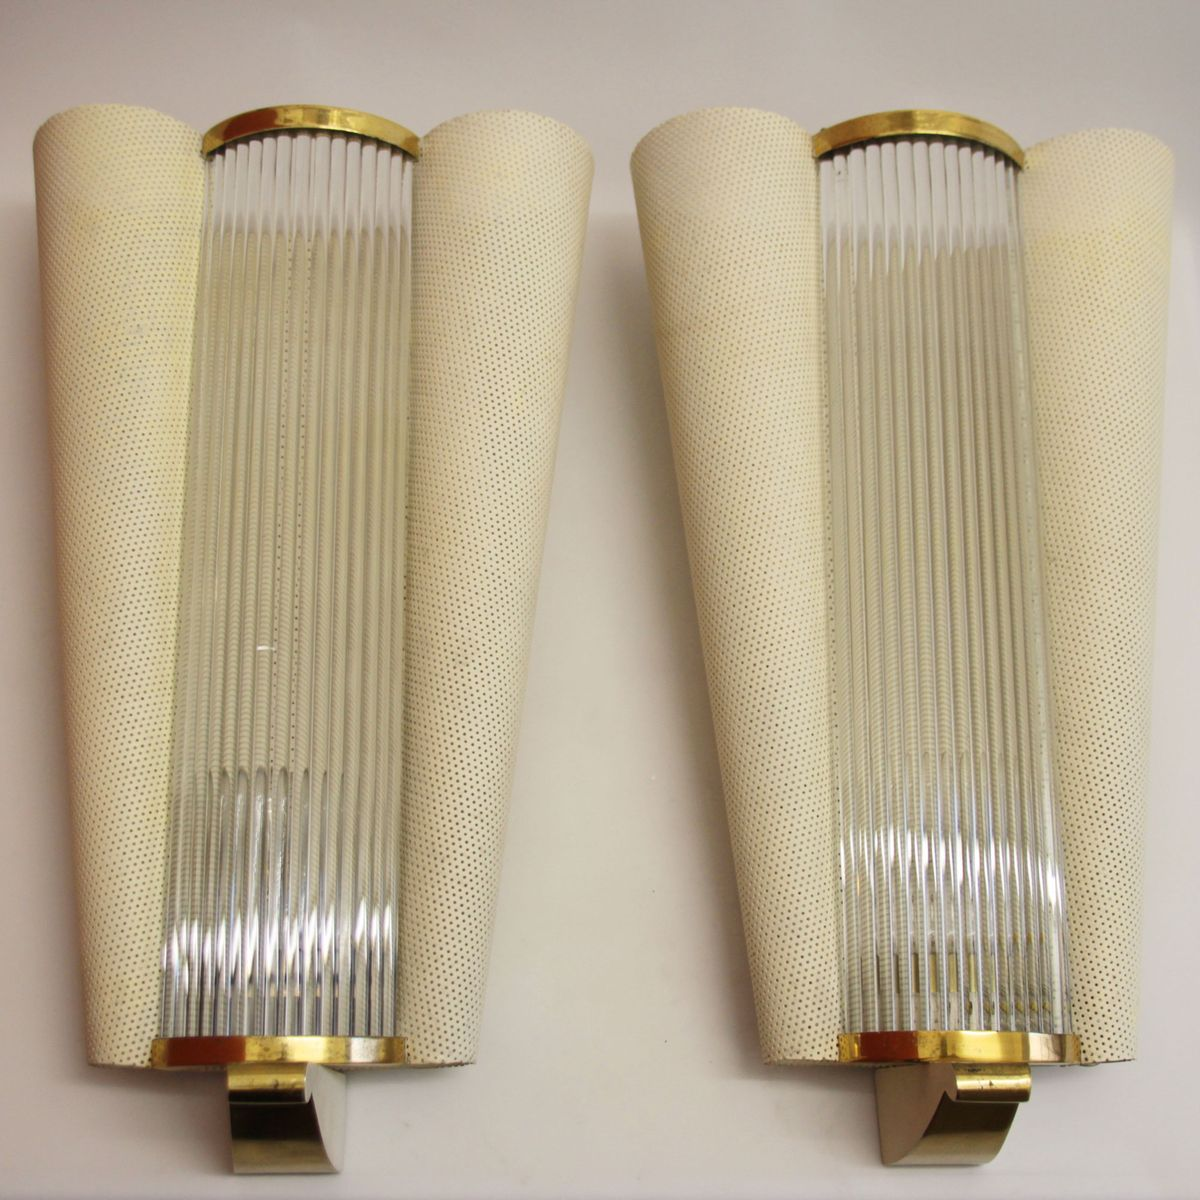 french midcentury wall sconces with glass rods from petitot  - french midcentury wall sconces with glass rods from petitot s set of